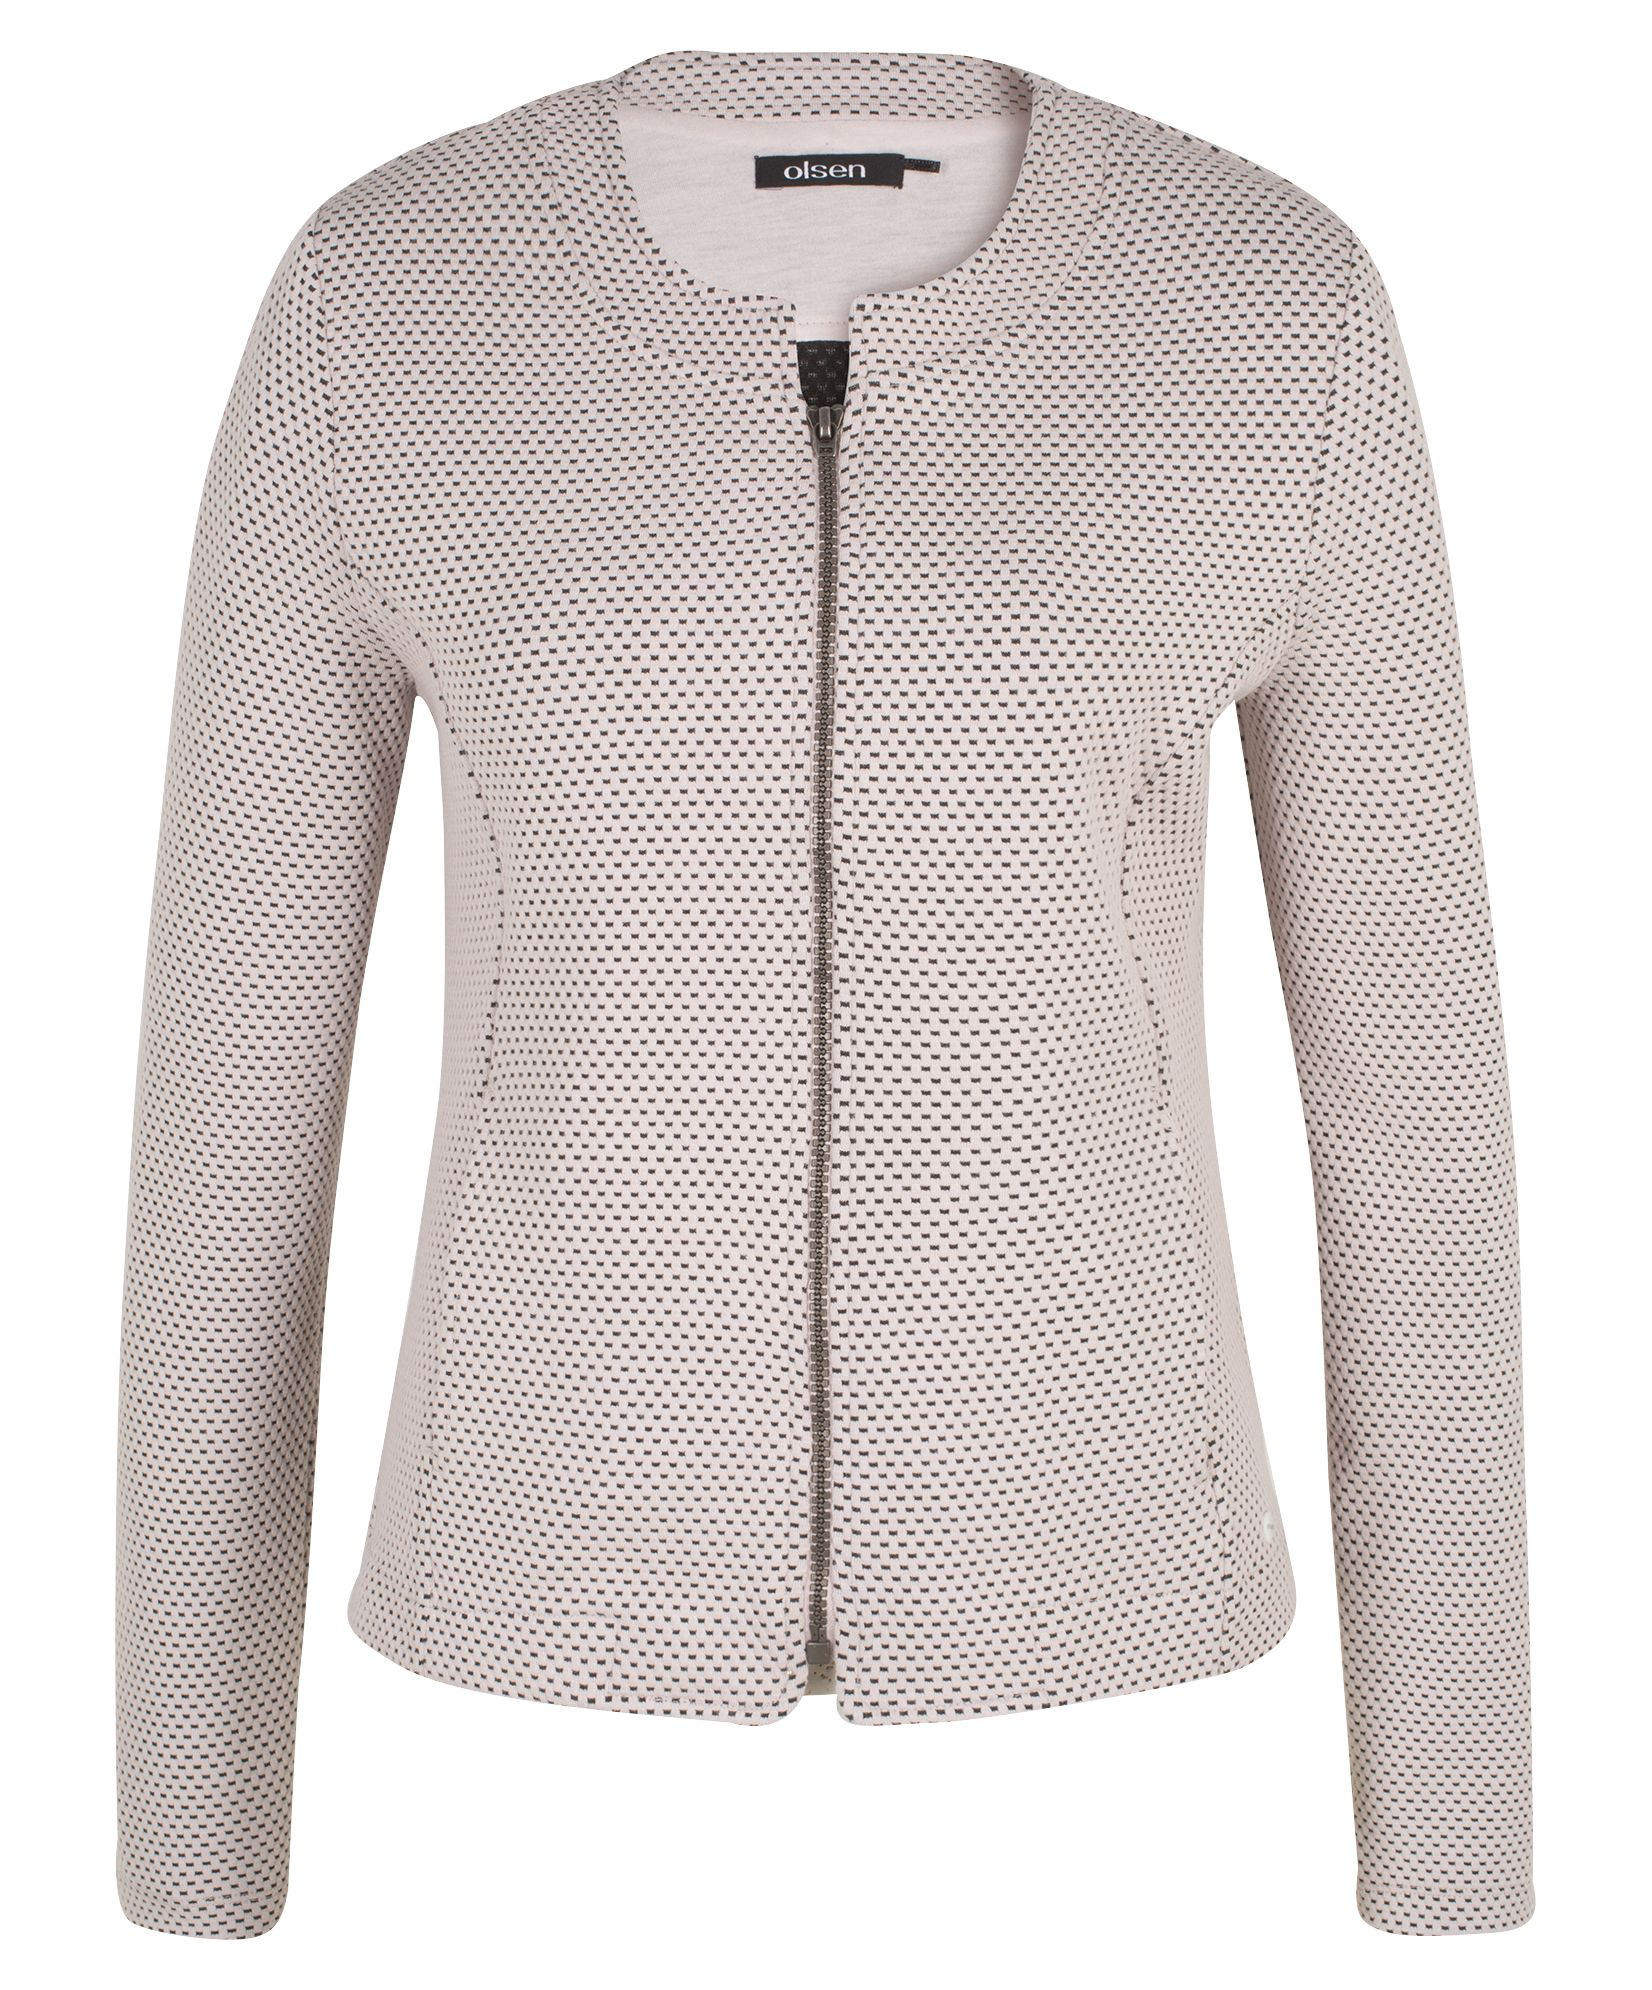 Olsen Indoor Jacket 3D Optic, White